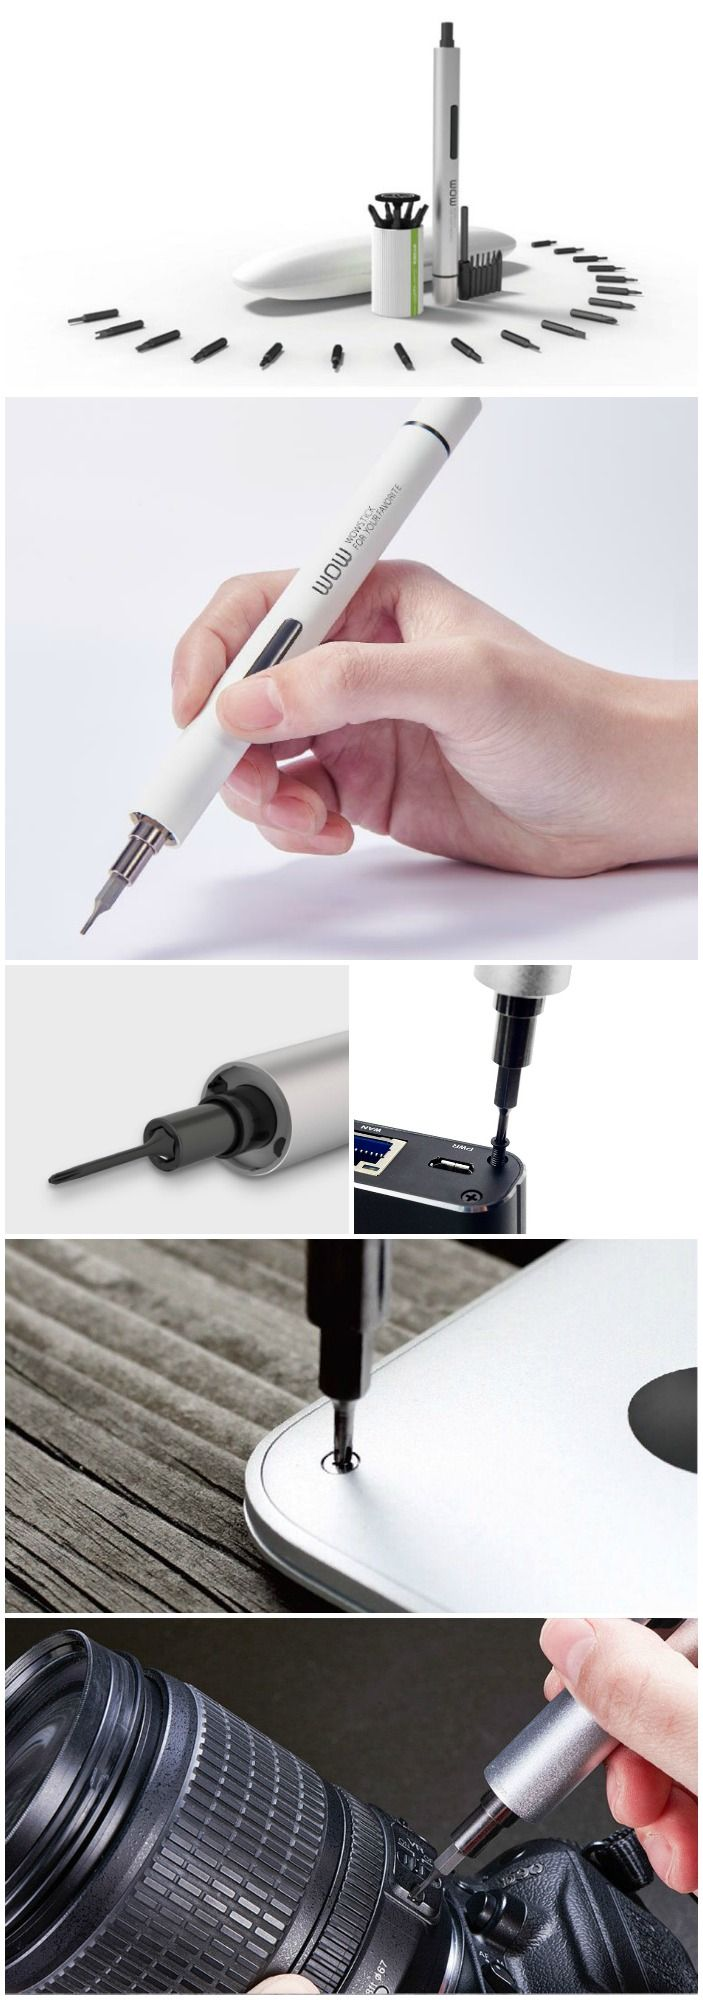 U2C The Wowstick is the first-of-its-kind portable cordless precision screwdrive…